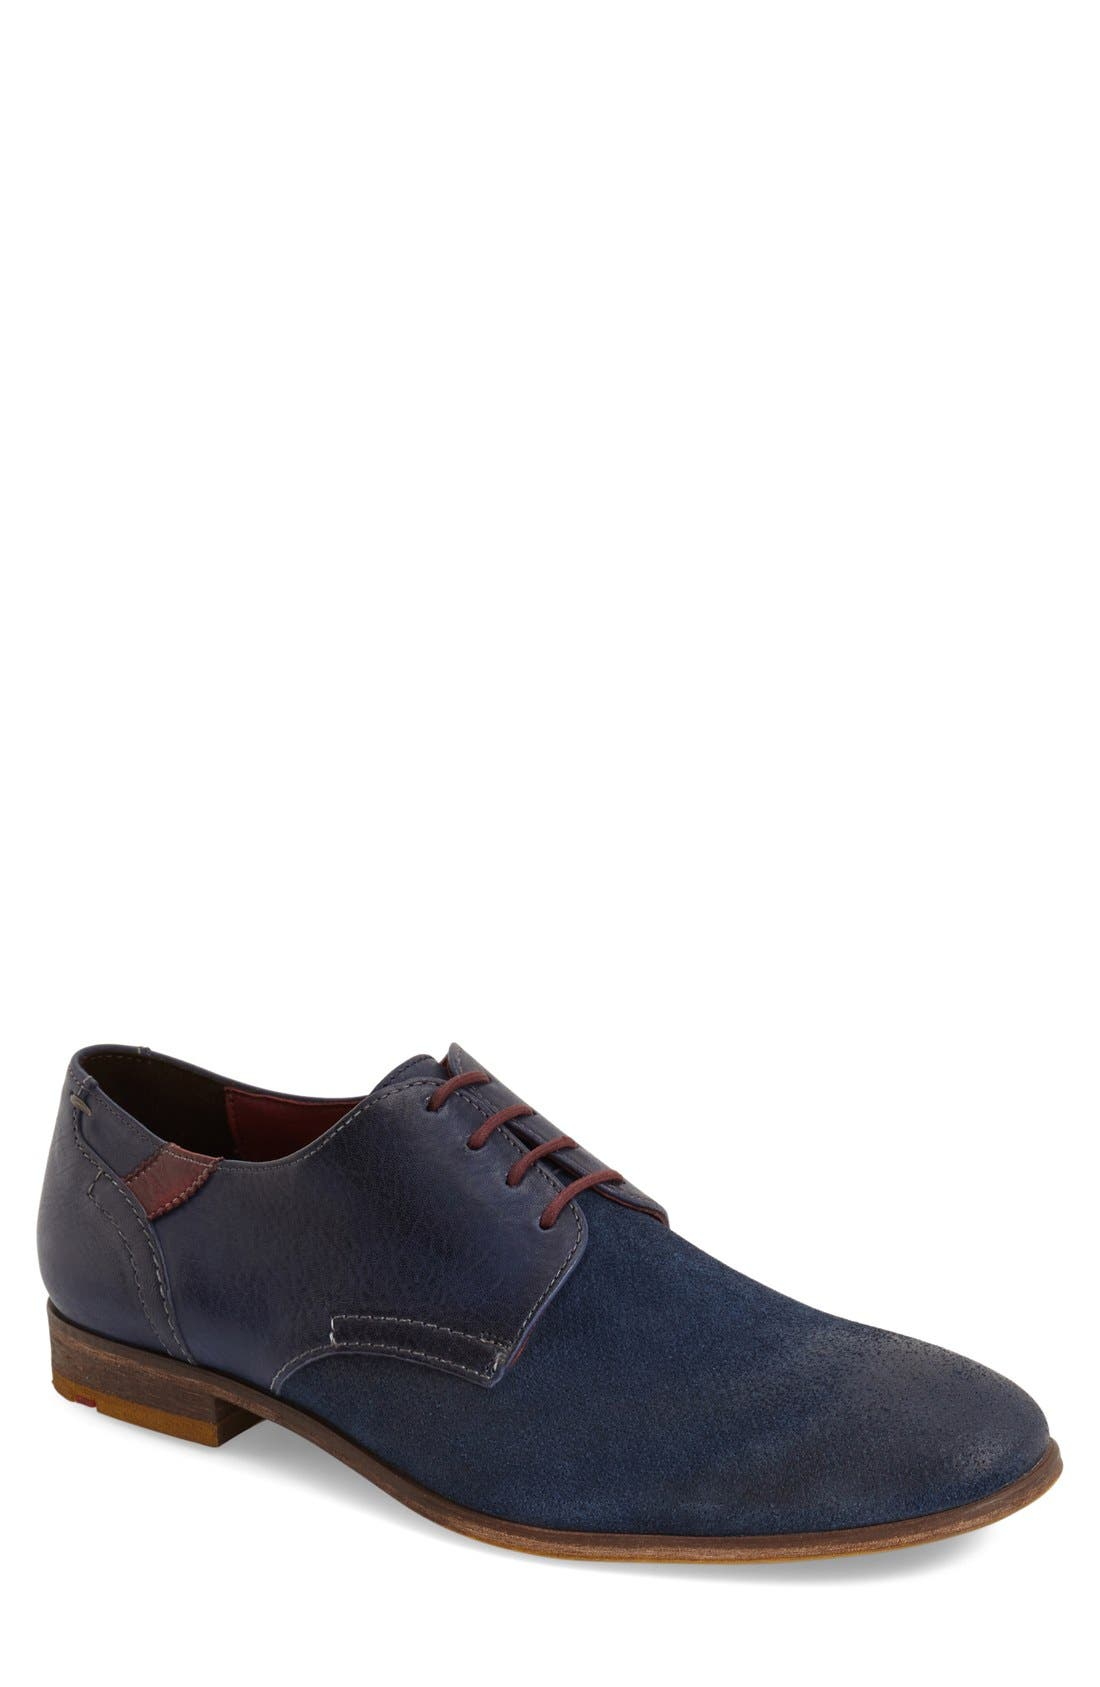 Alternate Image 1 Selected - Lloyd 'Gardell' Plain Toe Derby (Men)